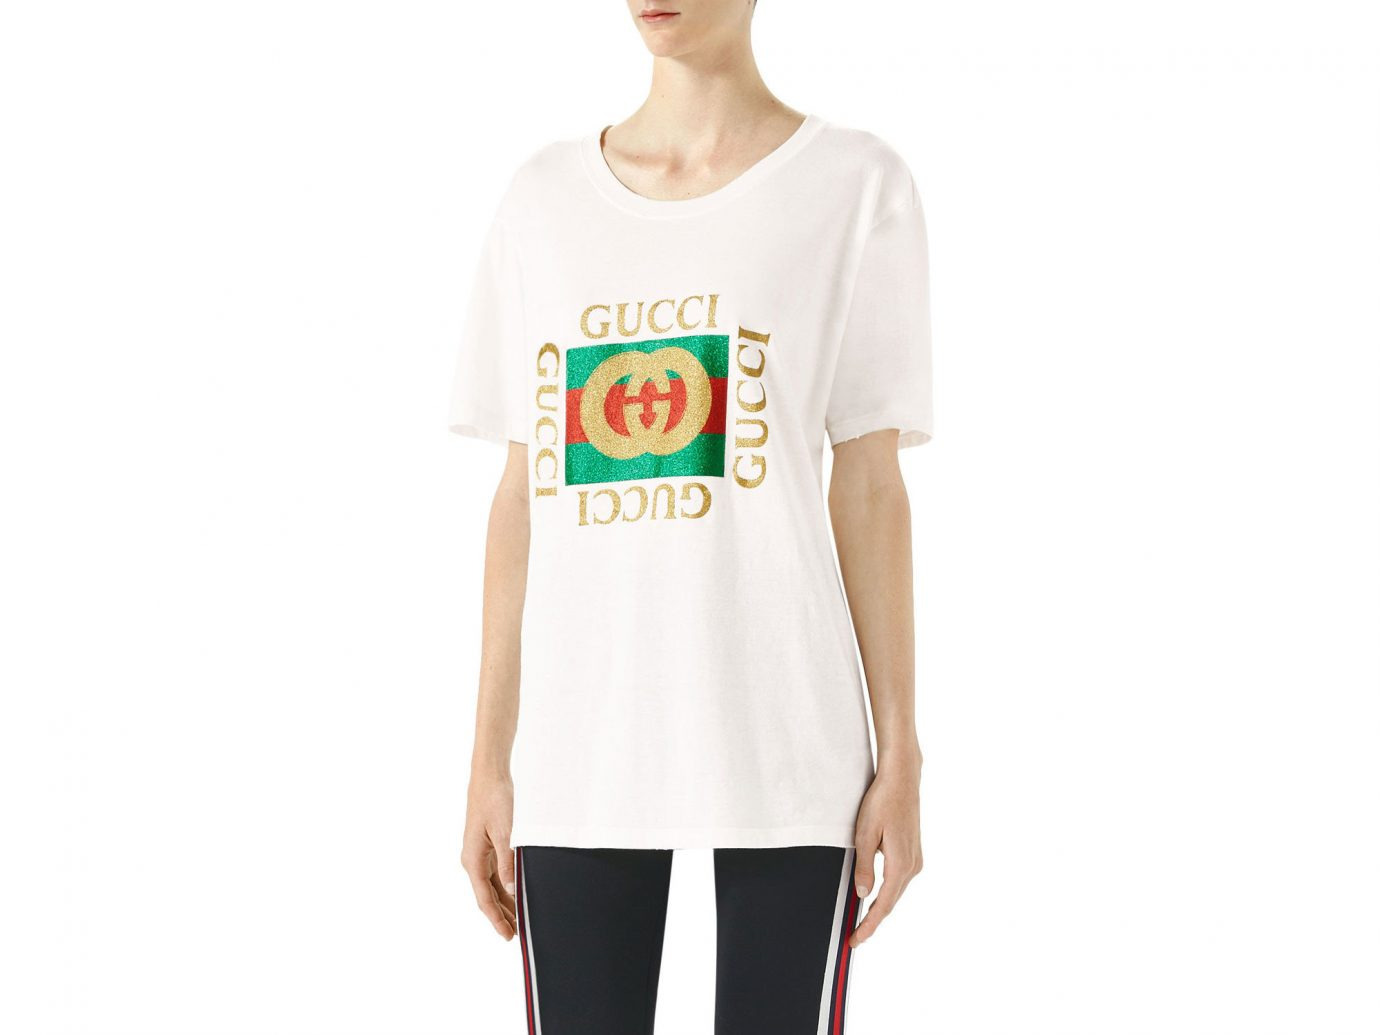 Travel Shop Travel Trends clothing white person t shirt sleeve standing shoulder product joint neck font top posing